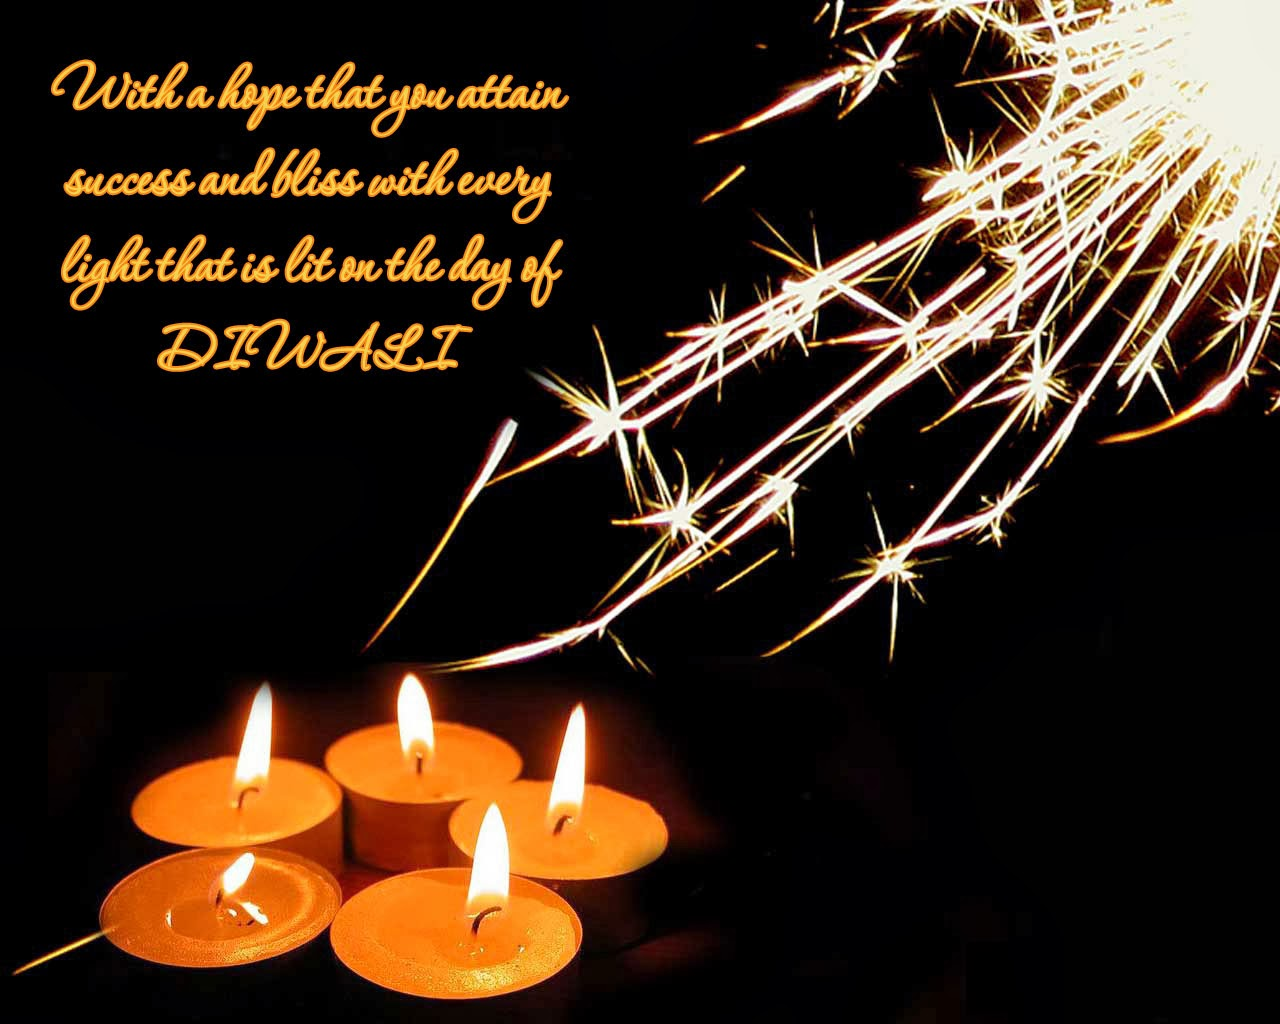 diwali wishes ideas 2013 diwali wishes messages